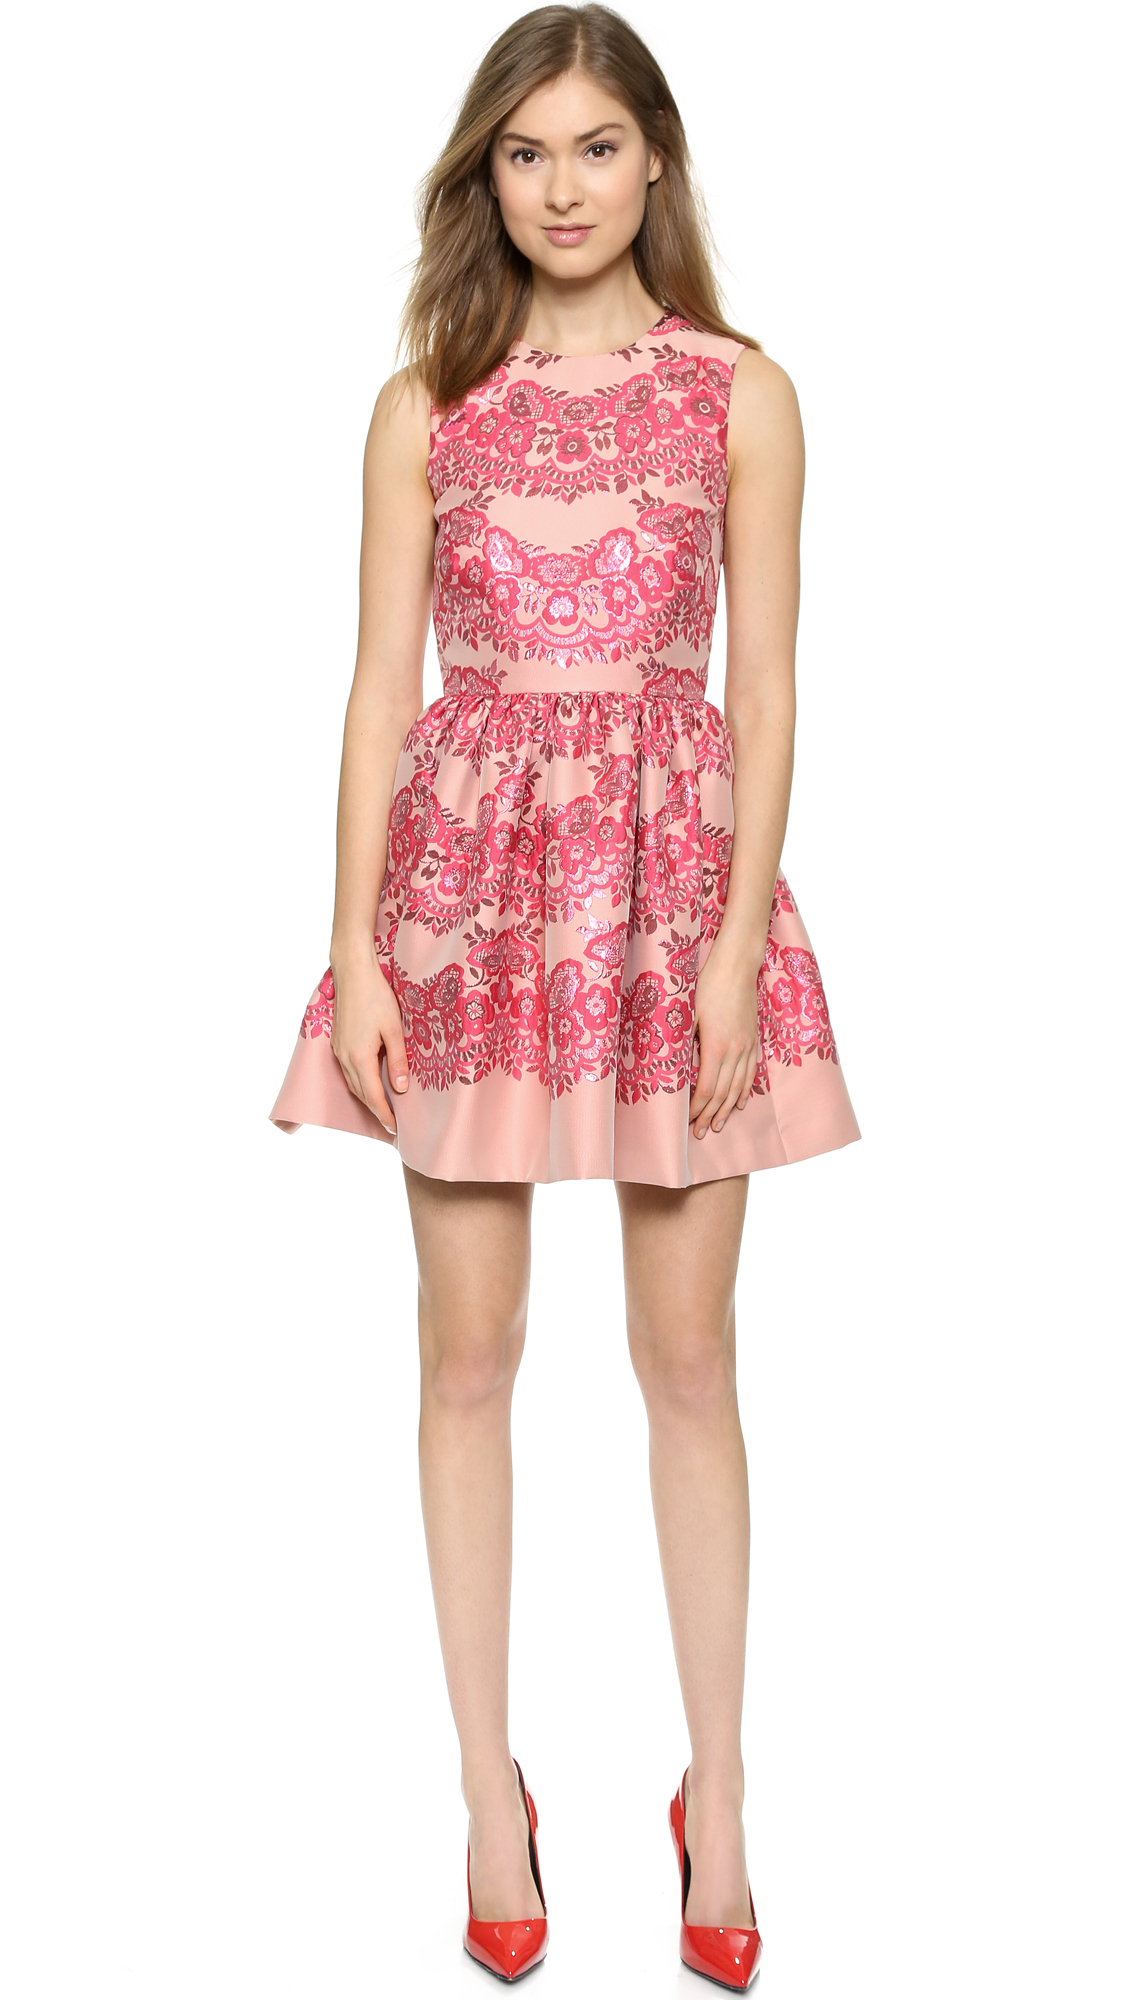 Red Valentino Lace Brocade Dress Ribes In Red Lyst